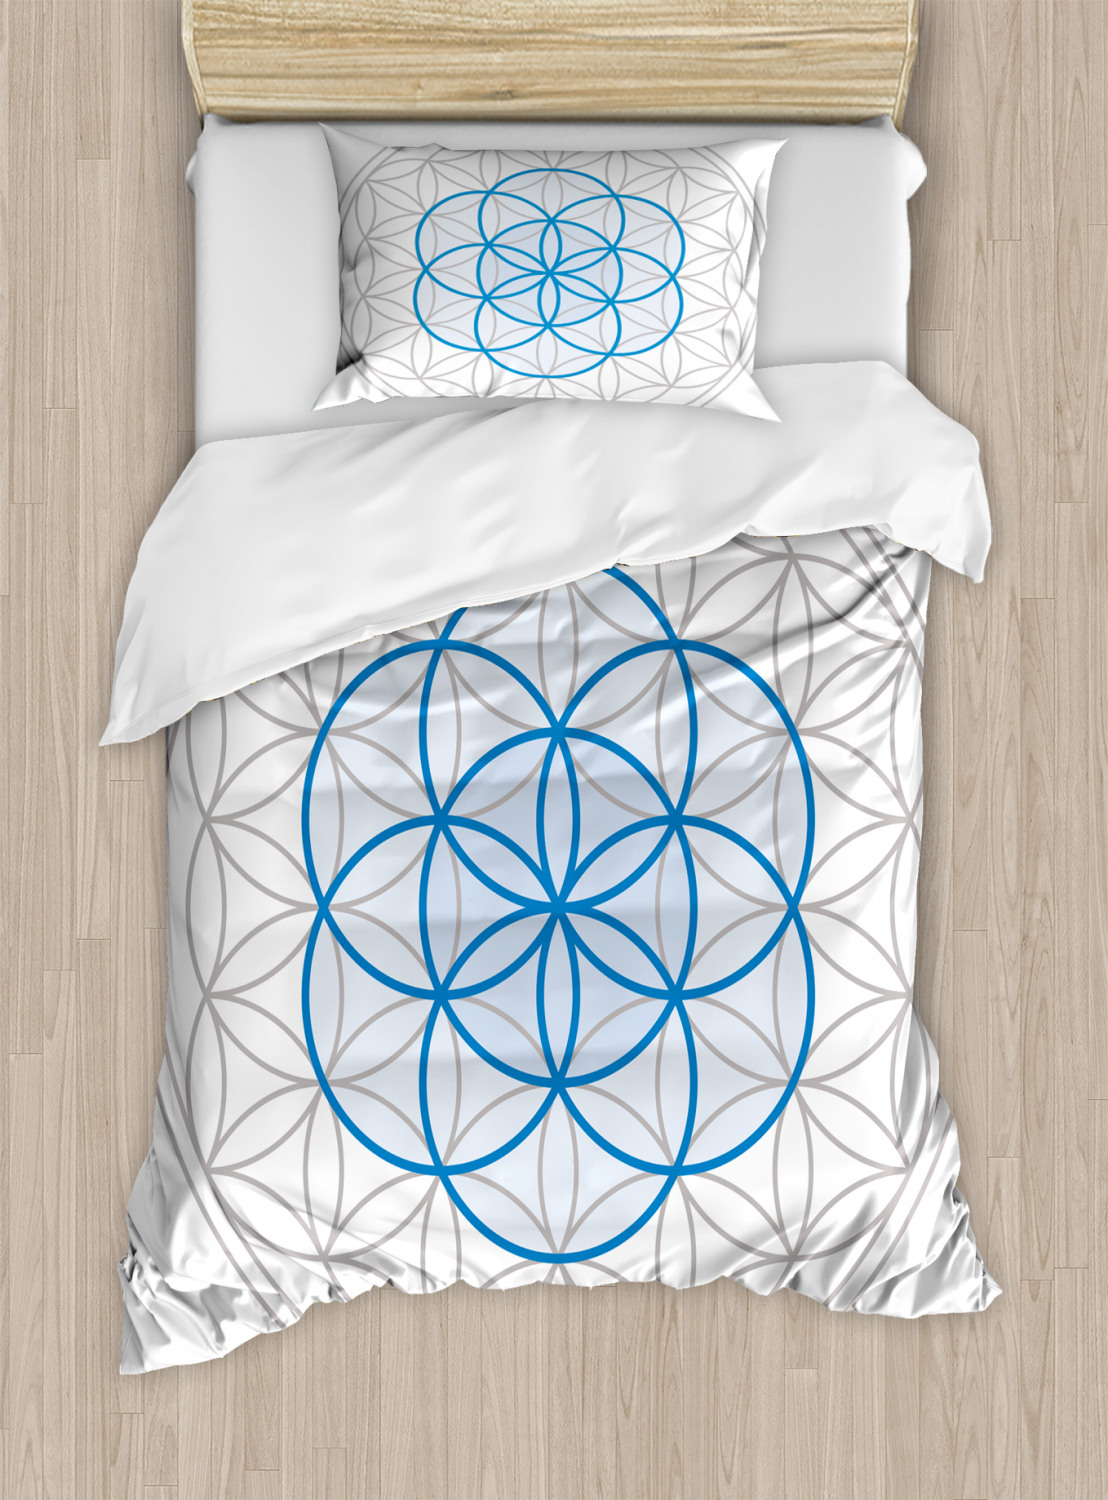 Flower-of-Life-Duvet-Cover-Set-Twin-Queen-King-Sizes-with-Pillow-Shams thumbnail 37